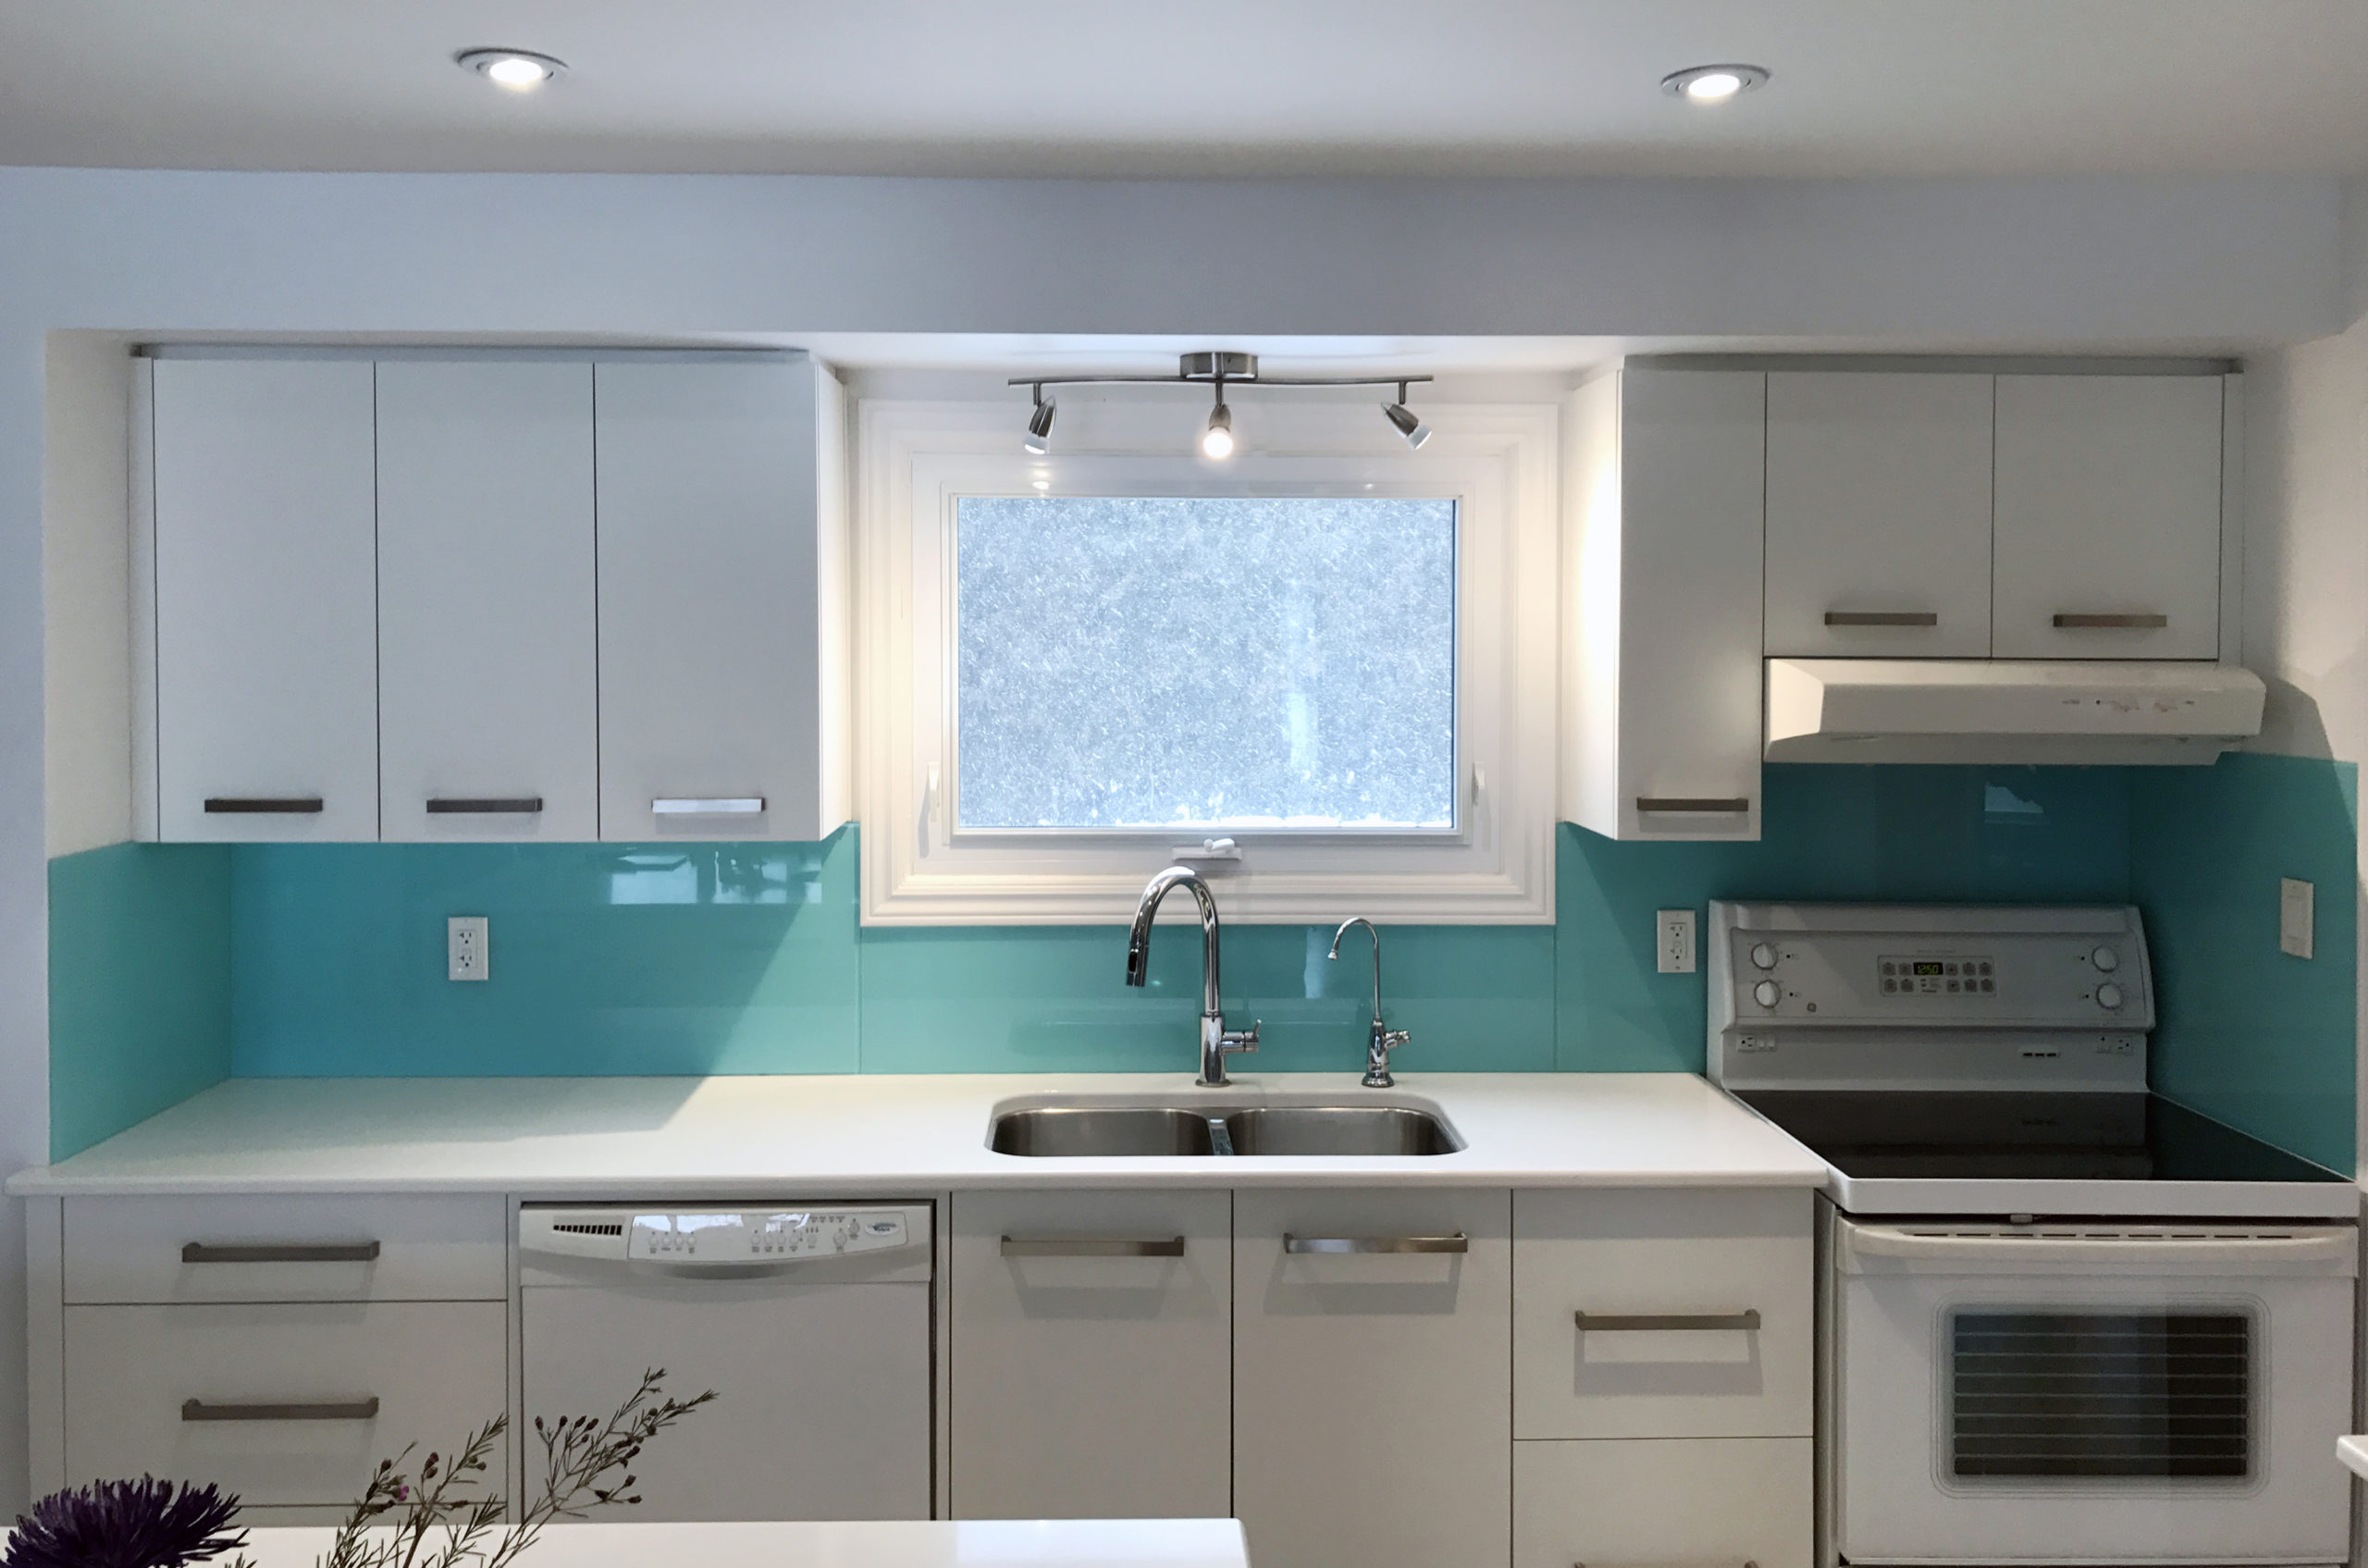 GC Backsplash 2017 02 10 LightTeal 1 scaled